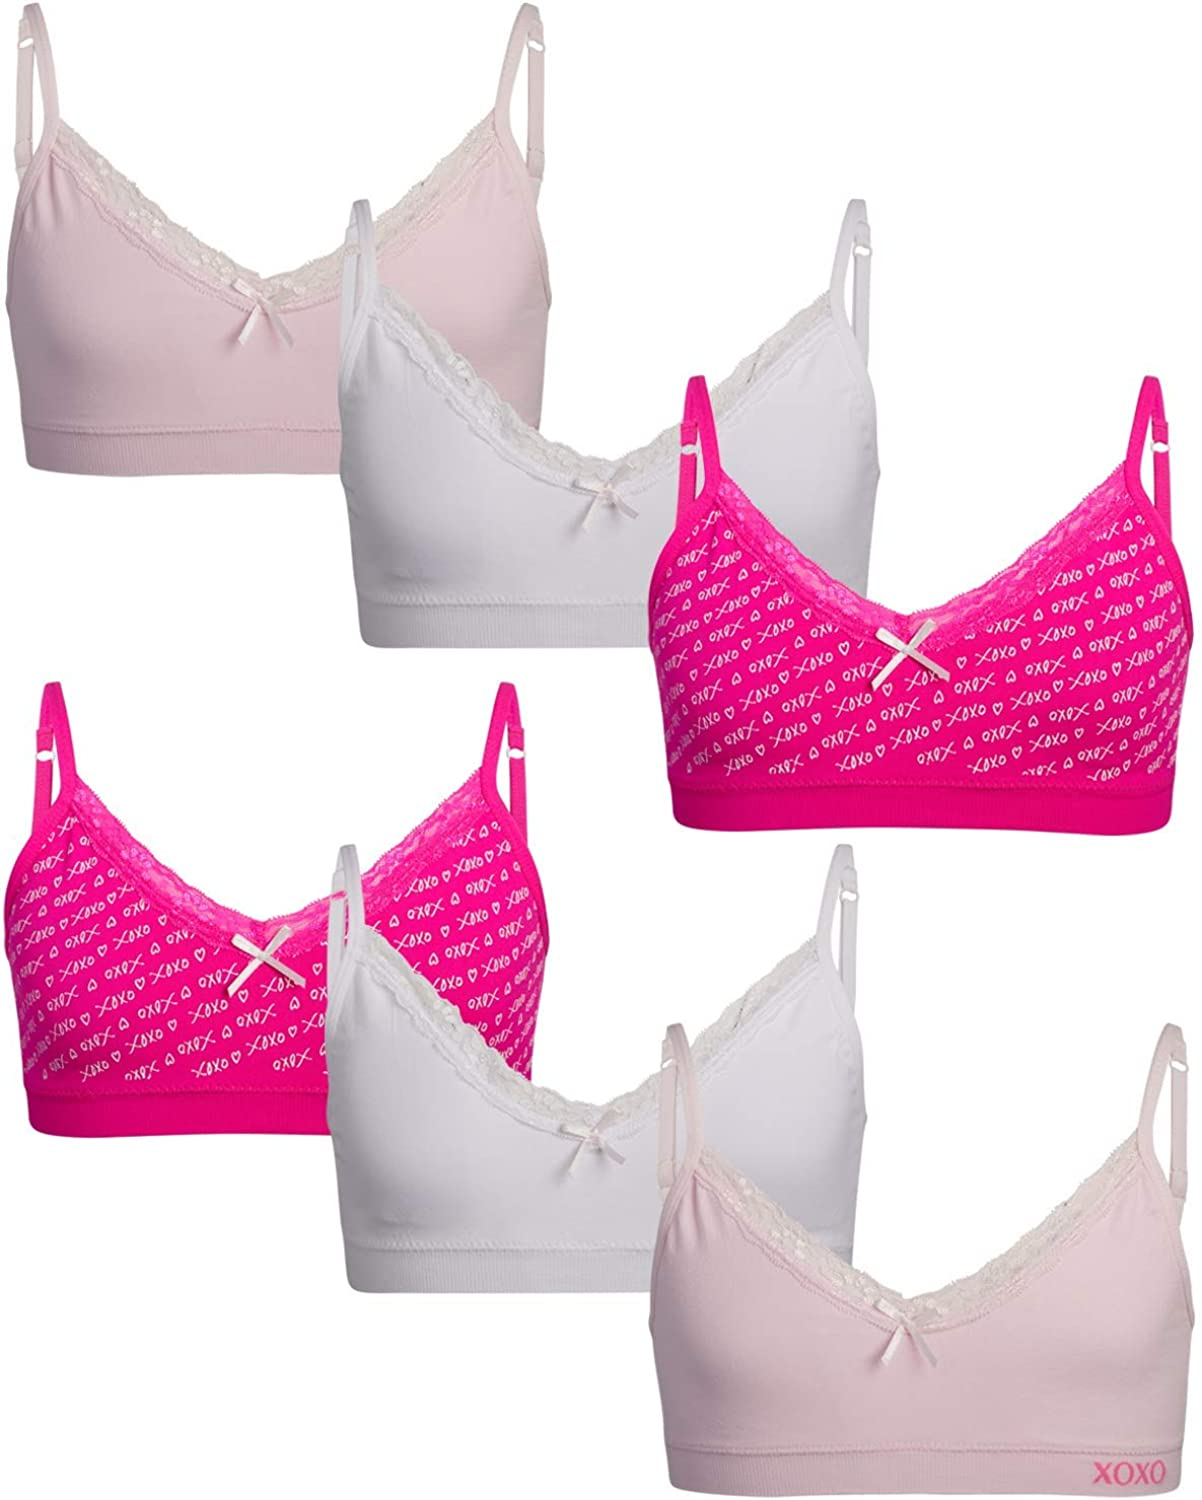 XOXO Girls' Training Bra - Seamless Cami Sports Bralette with Removable Pads (6 Pack)